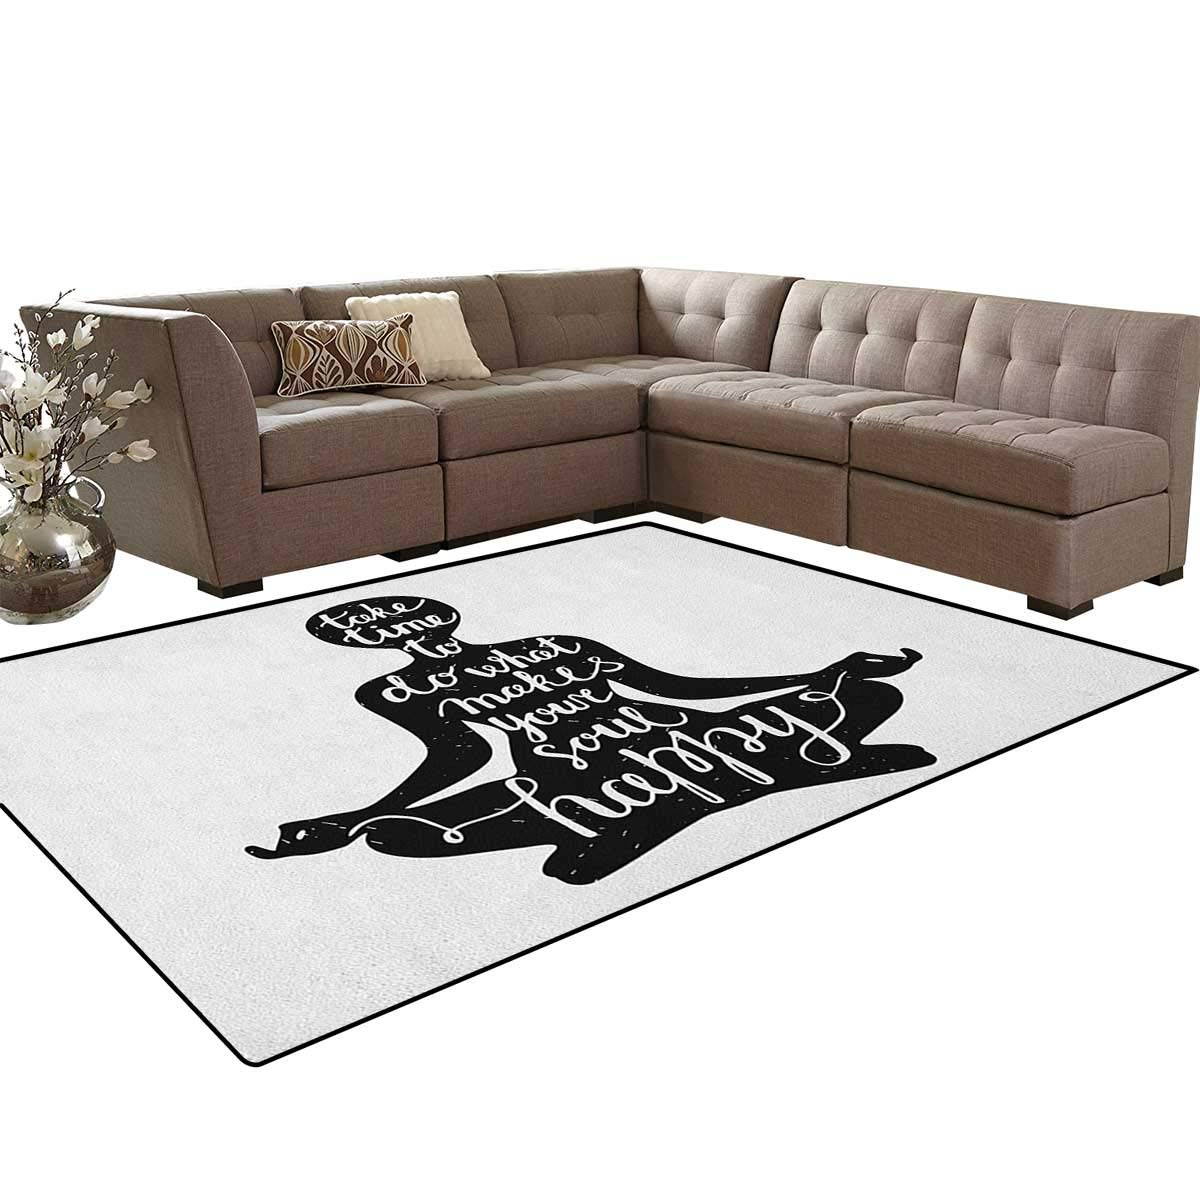 Amazon.com: Yoga, Carpet, Authentic Mandala Inspired ...